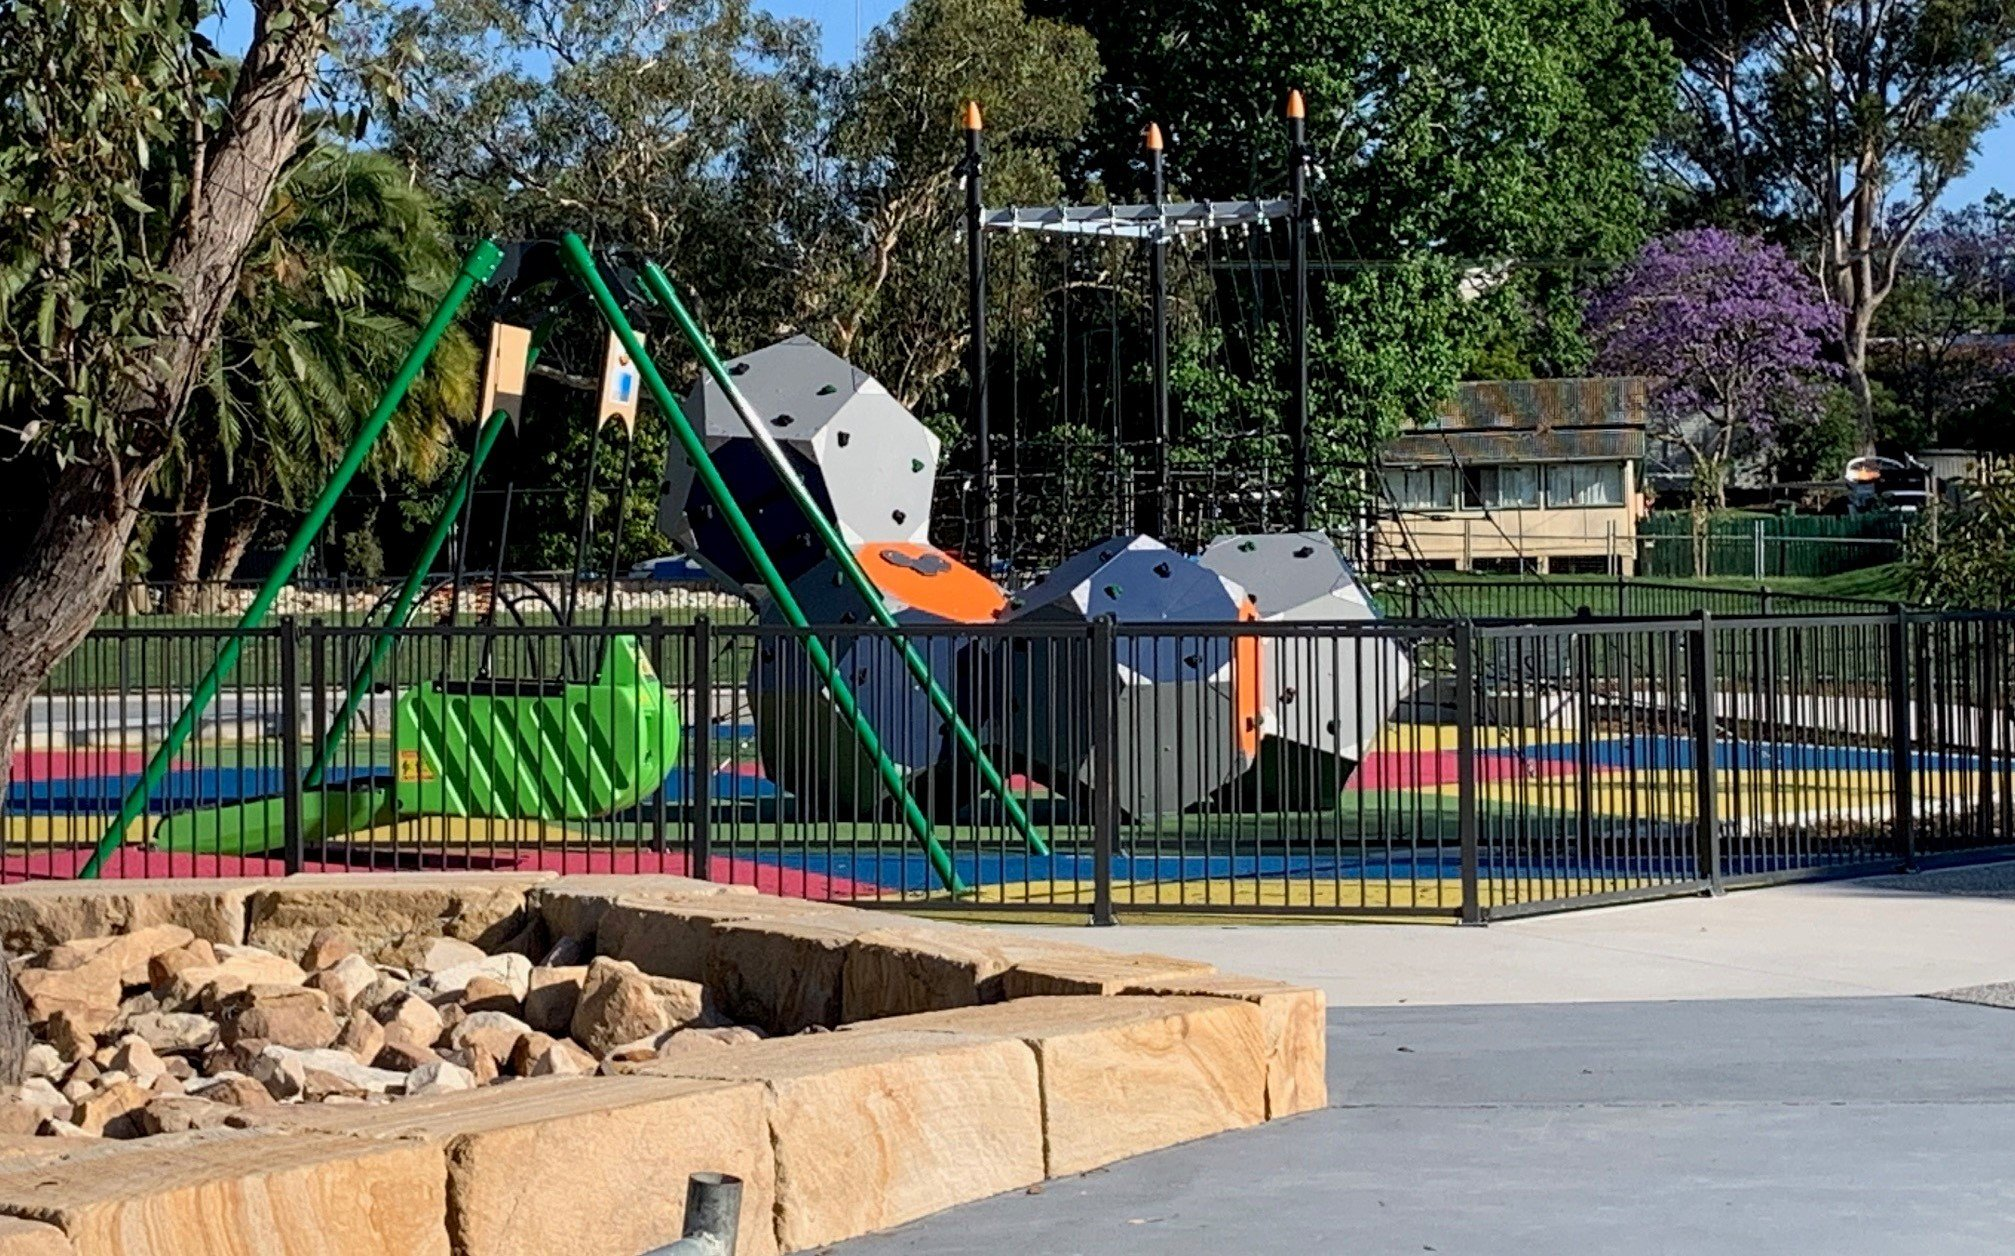 The new playground at Morisset's Bernie Goodwin Memorial Park is now open. It features an upper activity area for younger kids and a lower area for older kids, as